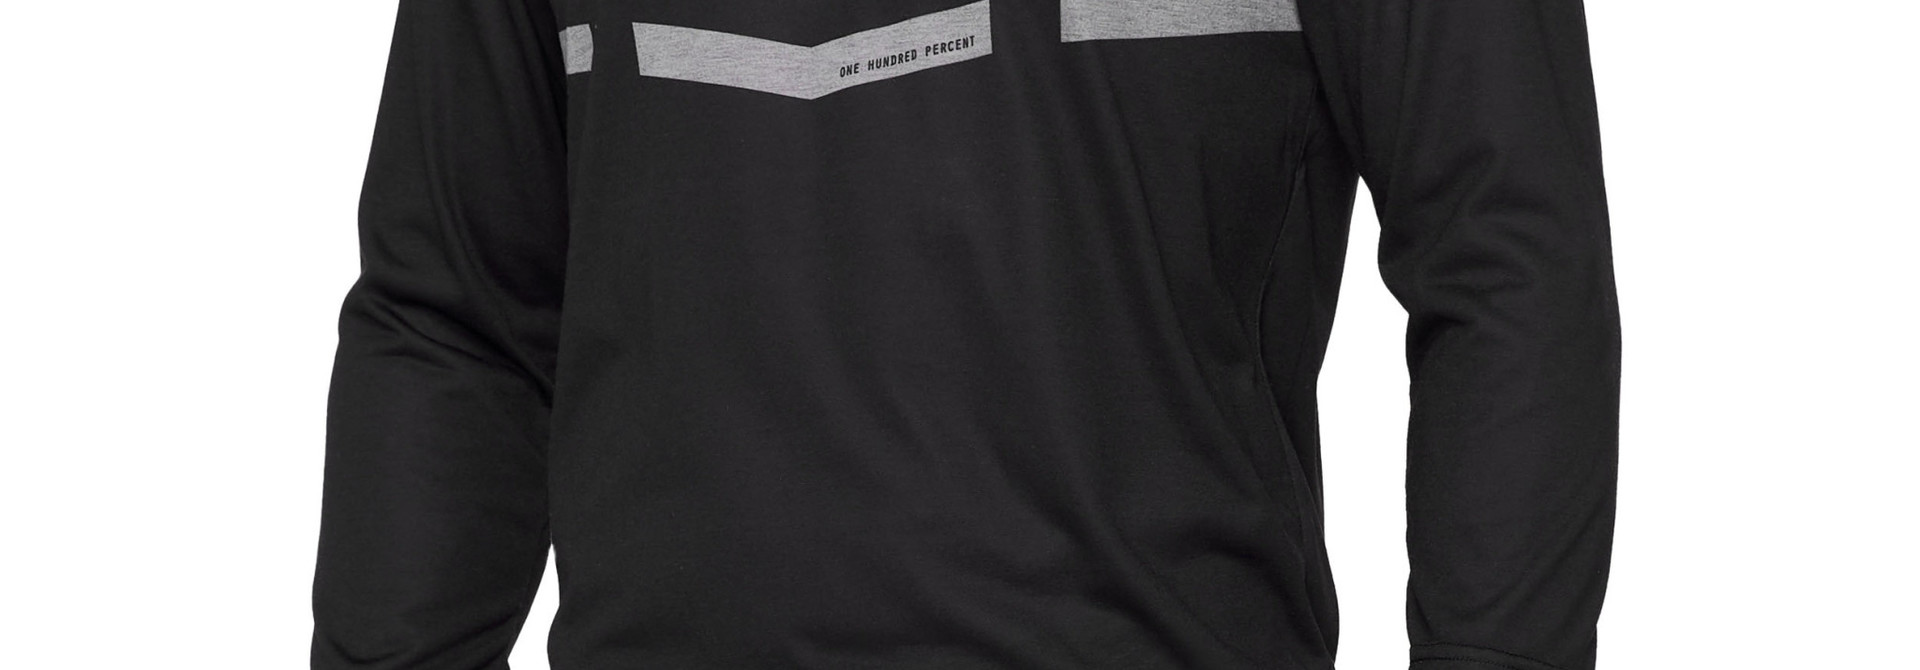 Airmatic Jersey 3/4 Sleeve